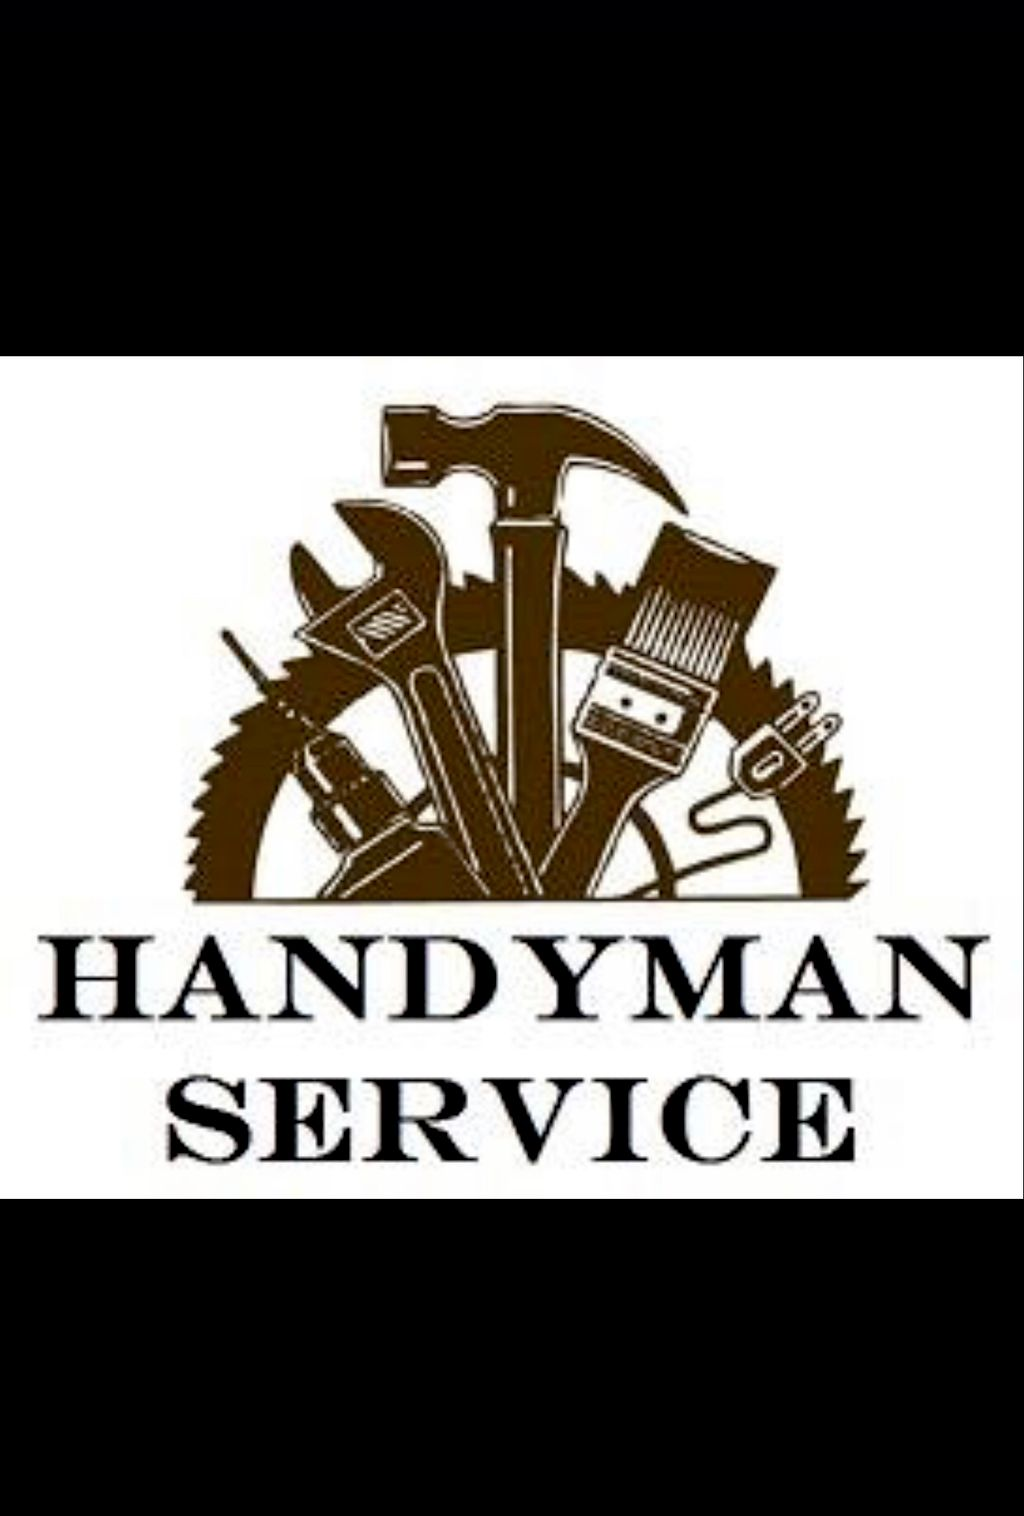 Progreso Plumbing and Handyman services